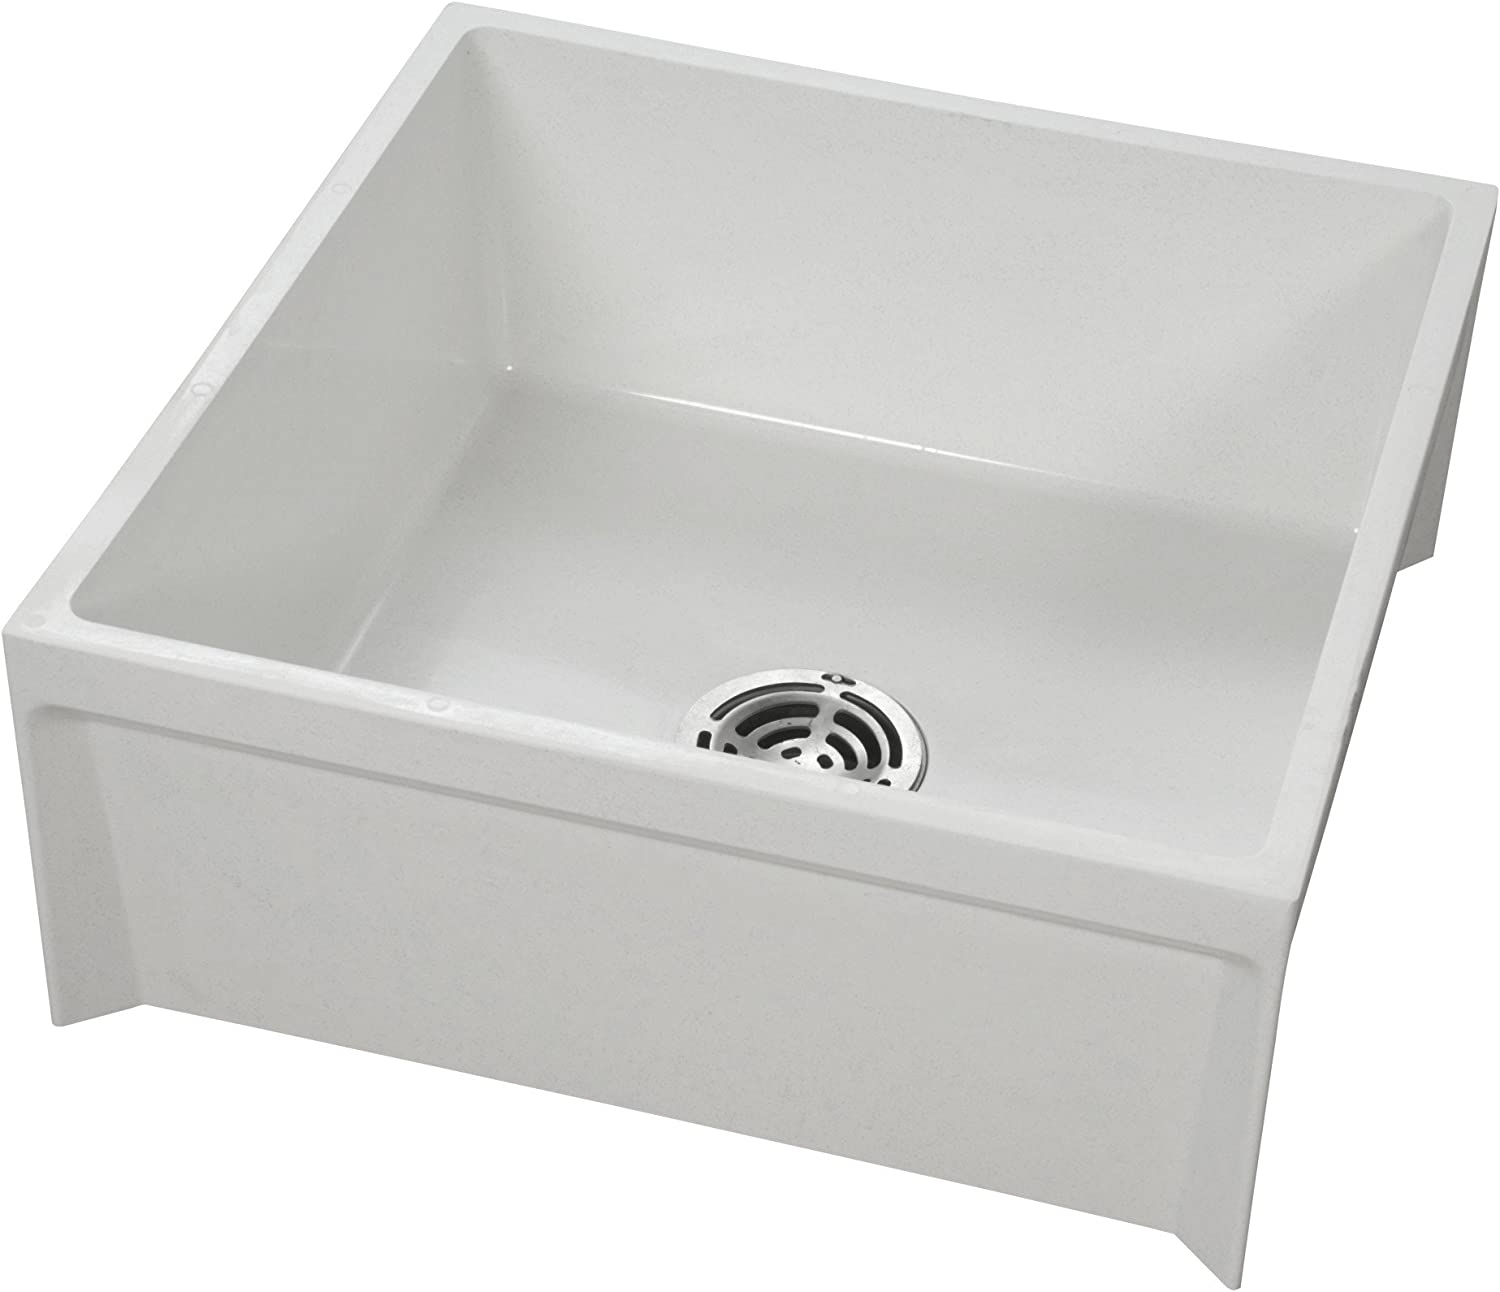 American Standard MSB2424100 Fiat Showers Molded Stone Mop Basin, White